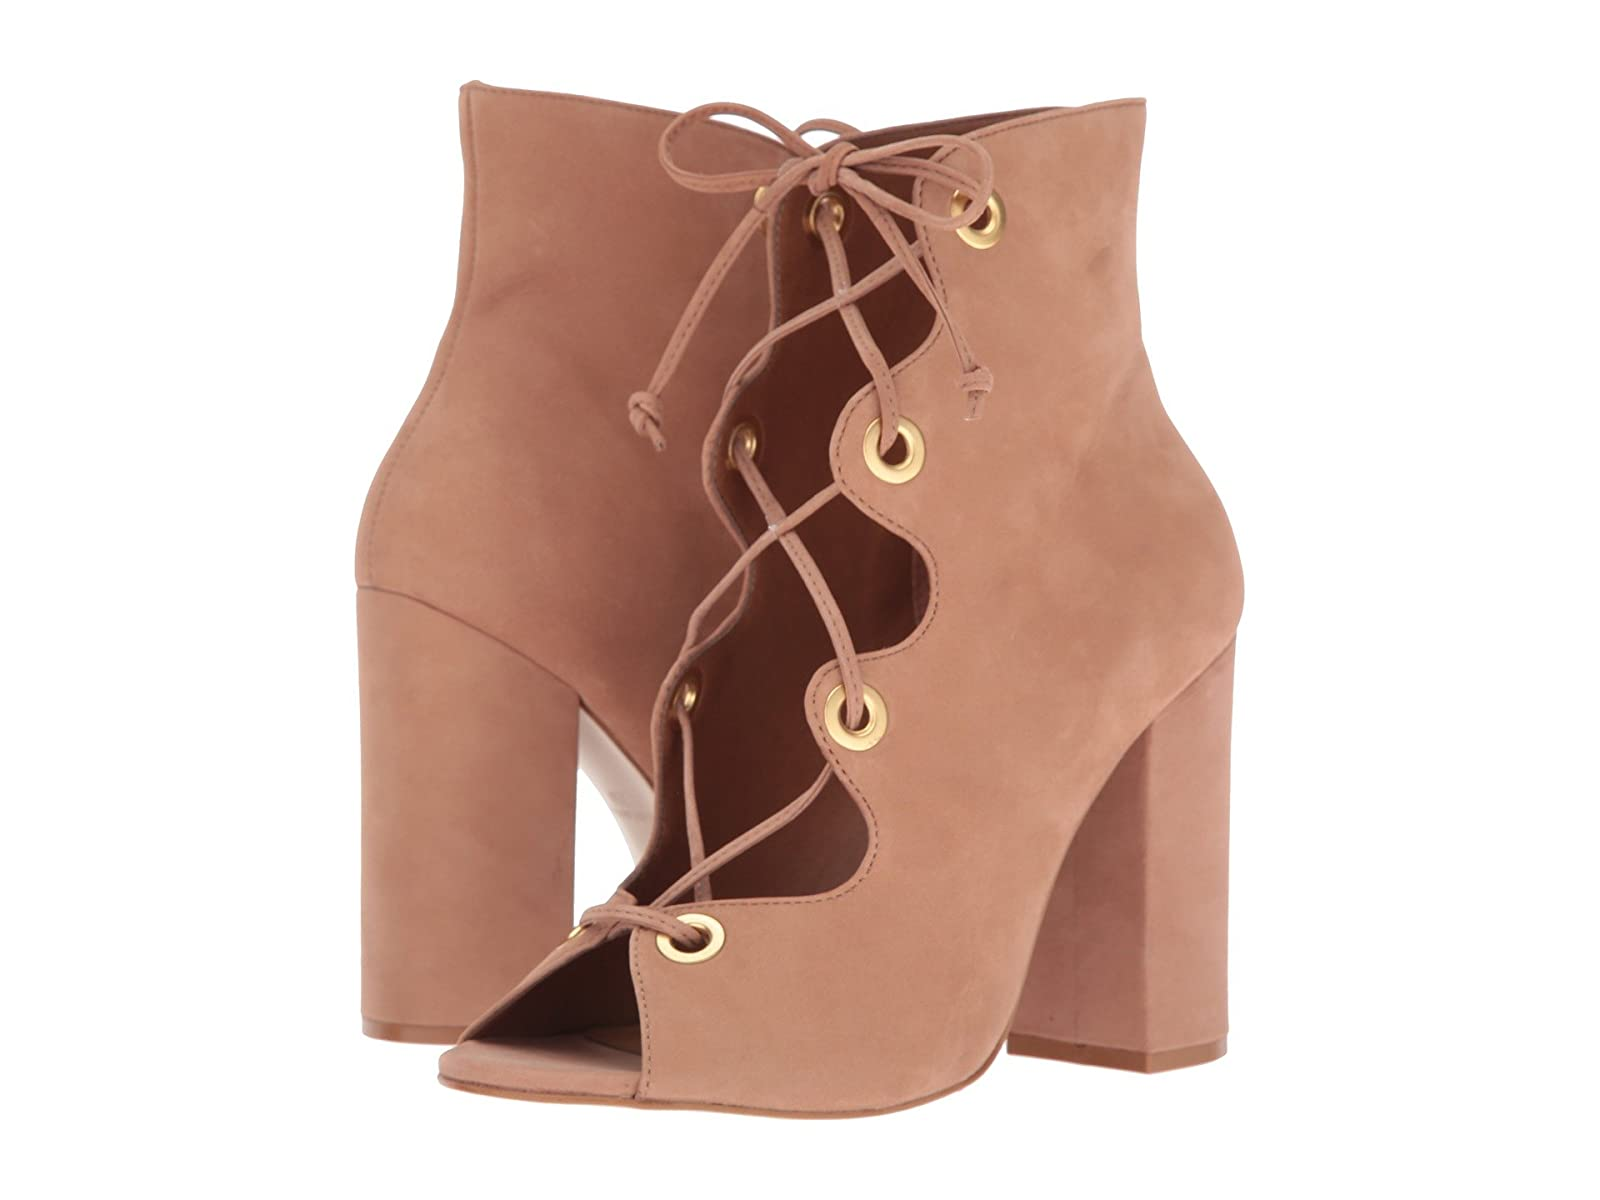 Steve Madden CarussoCheap and distinctive eye-catching shoes